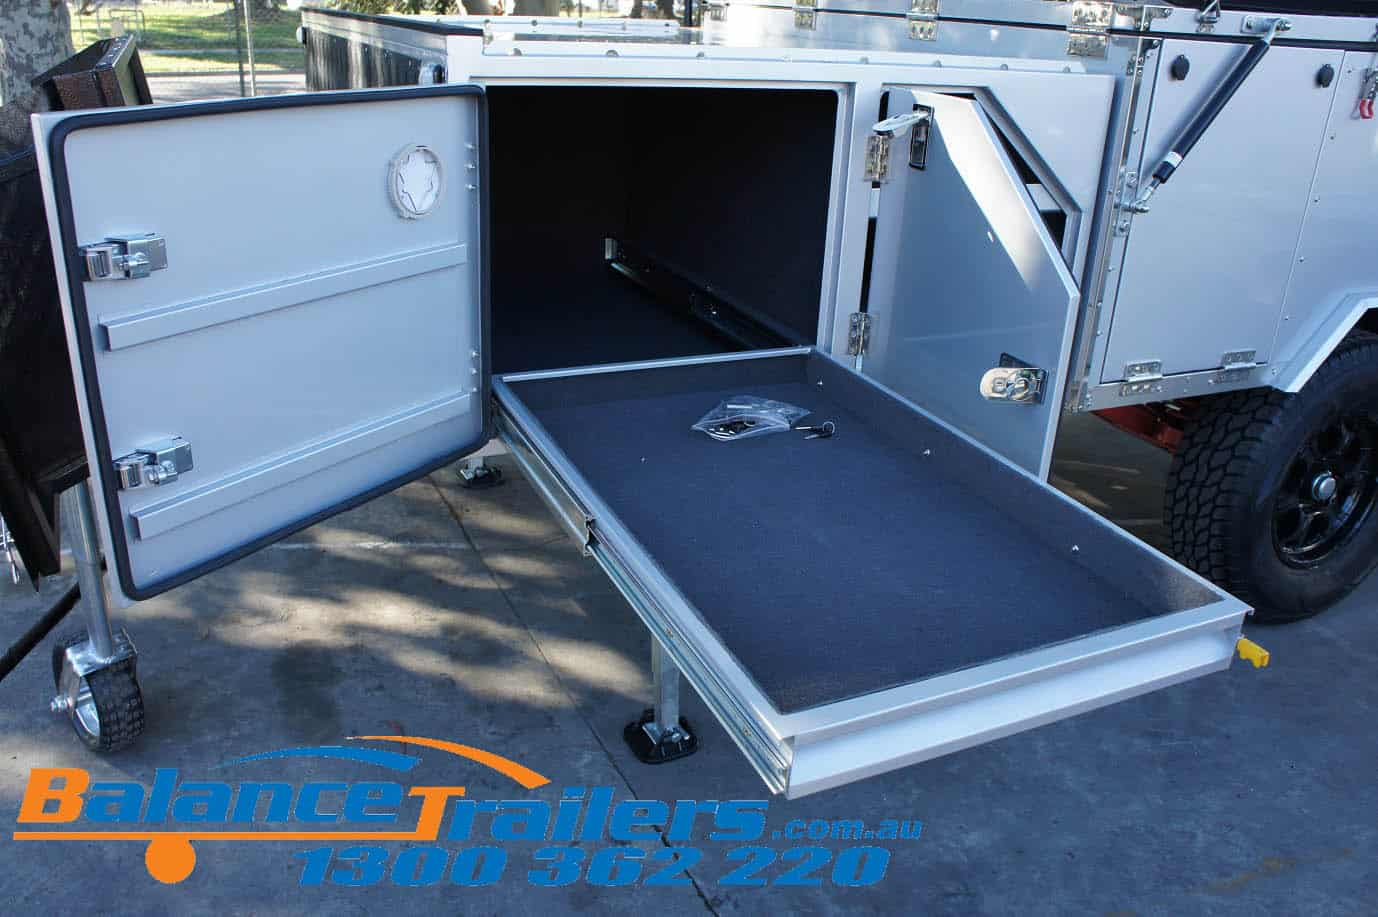 Hard Floor Camper Trailer BT02HF Image 18